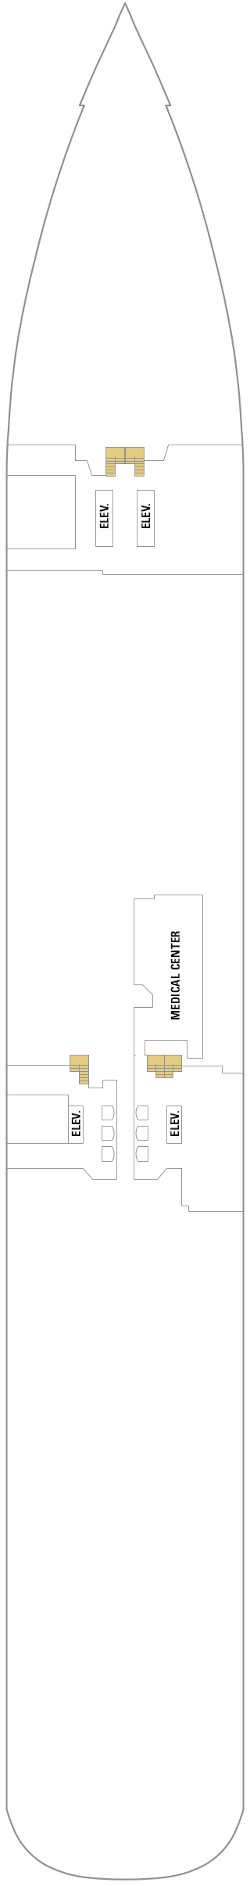 Quantum Of The Seas Deck Two Deck Plan